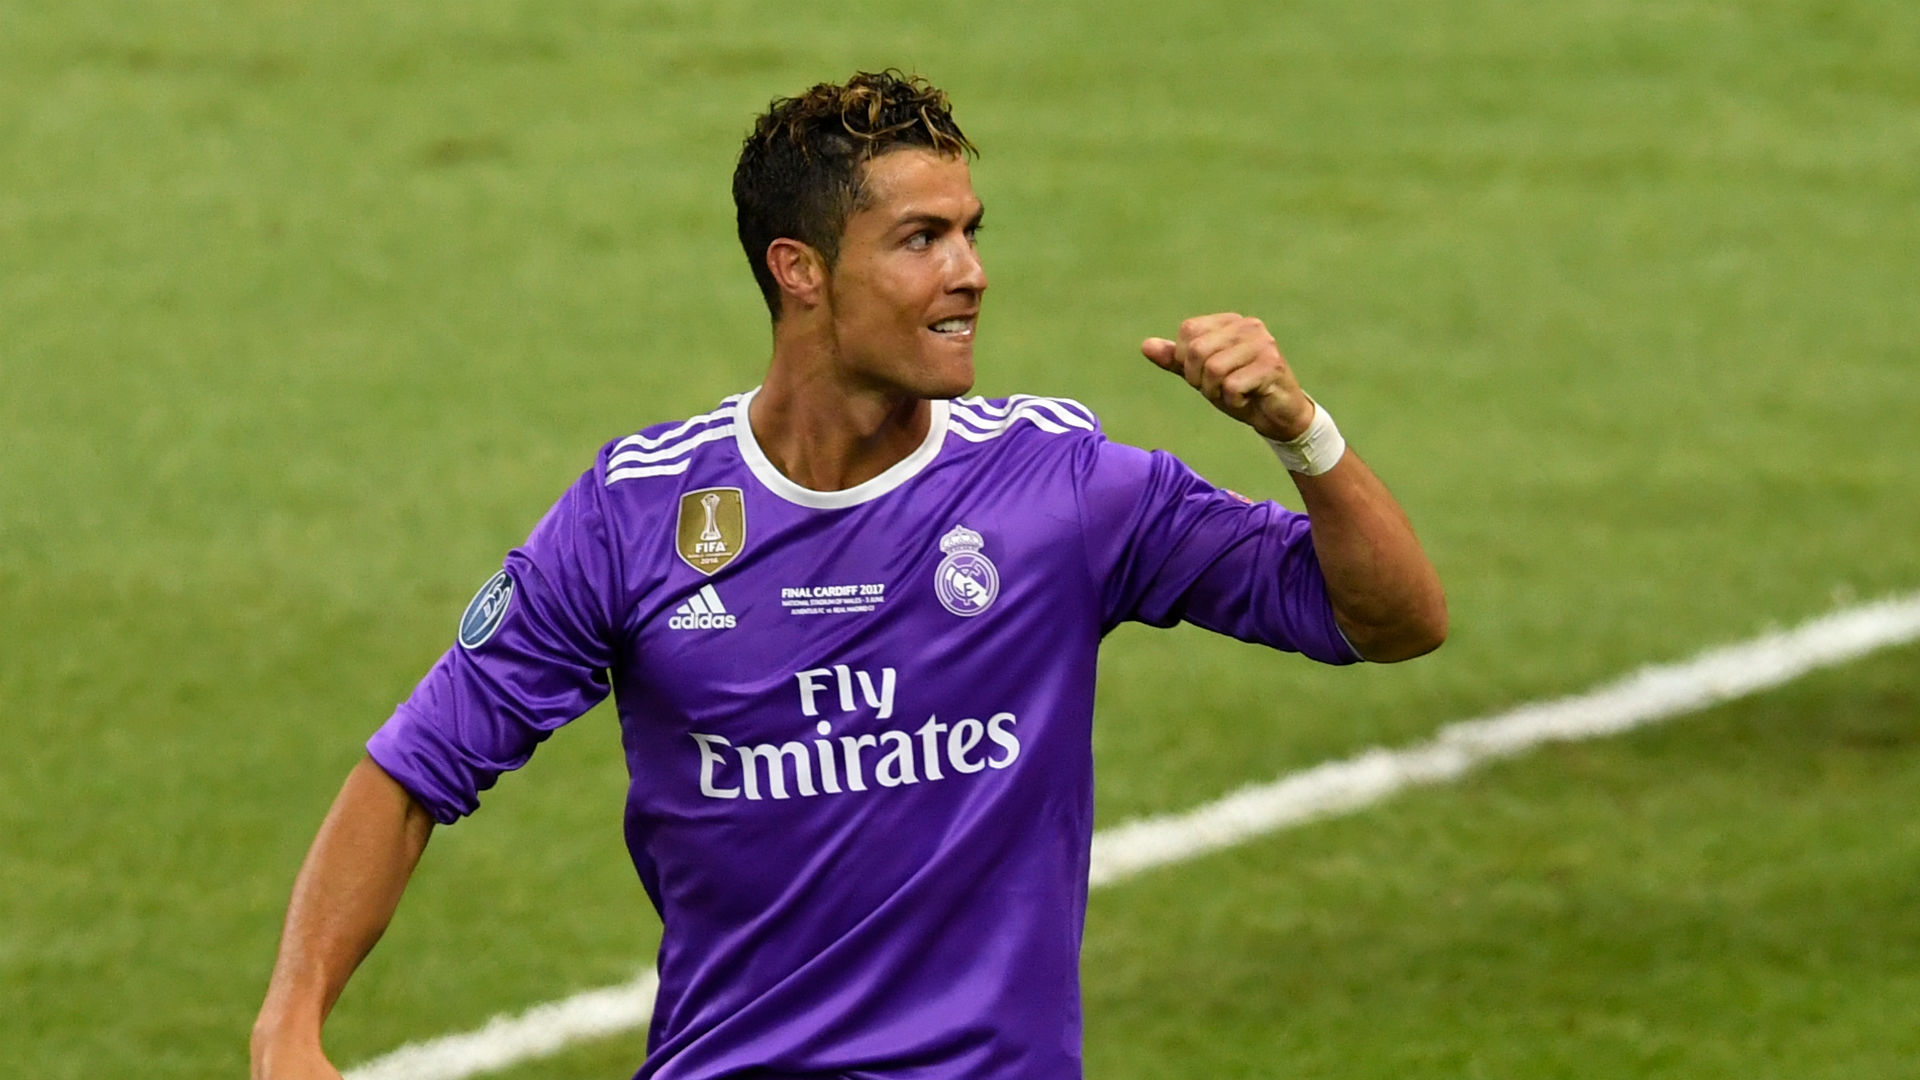 new product d17c0 a0b67 Cristiano Ronaldo to leave Real Madrid? - CR7's club career ...